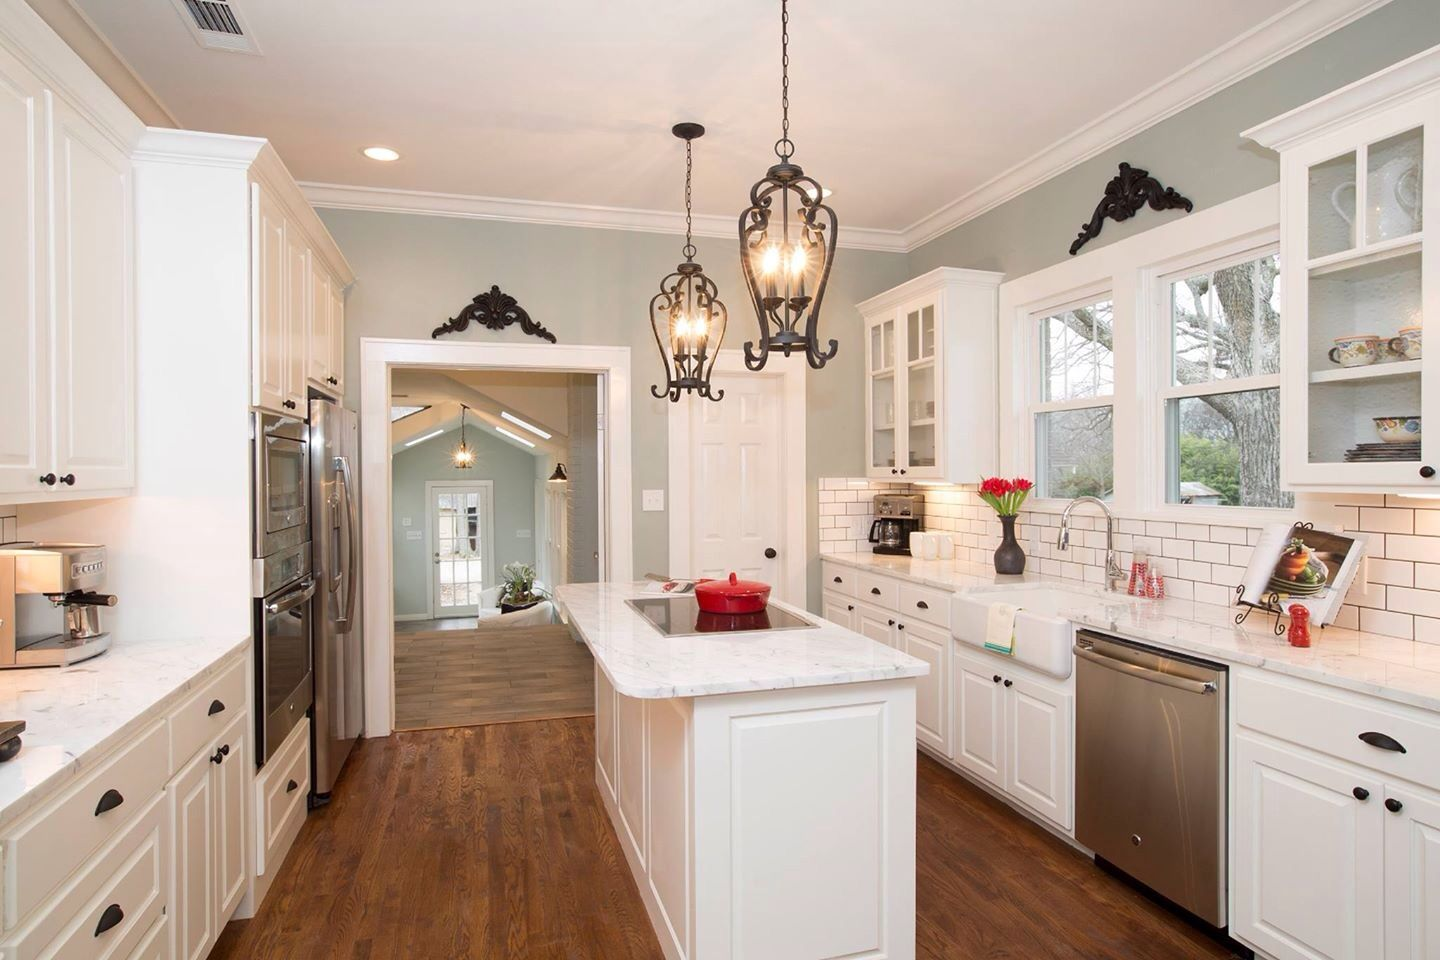 Hgtv fixer upper kitchen tile - 17 Best Images About Fixer Upper On Pinterest Magnolia Homes Joanna Gaines Blog And Magnolia Market